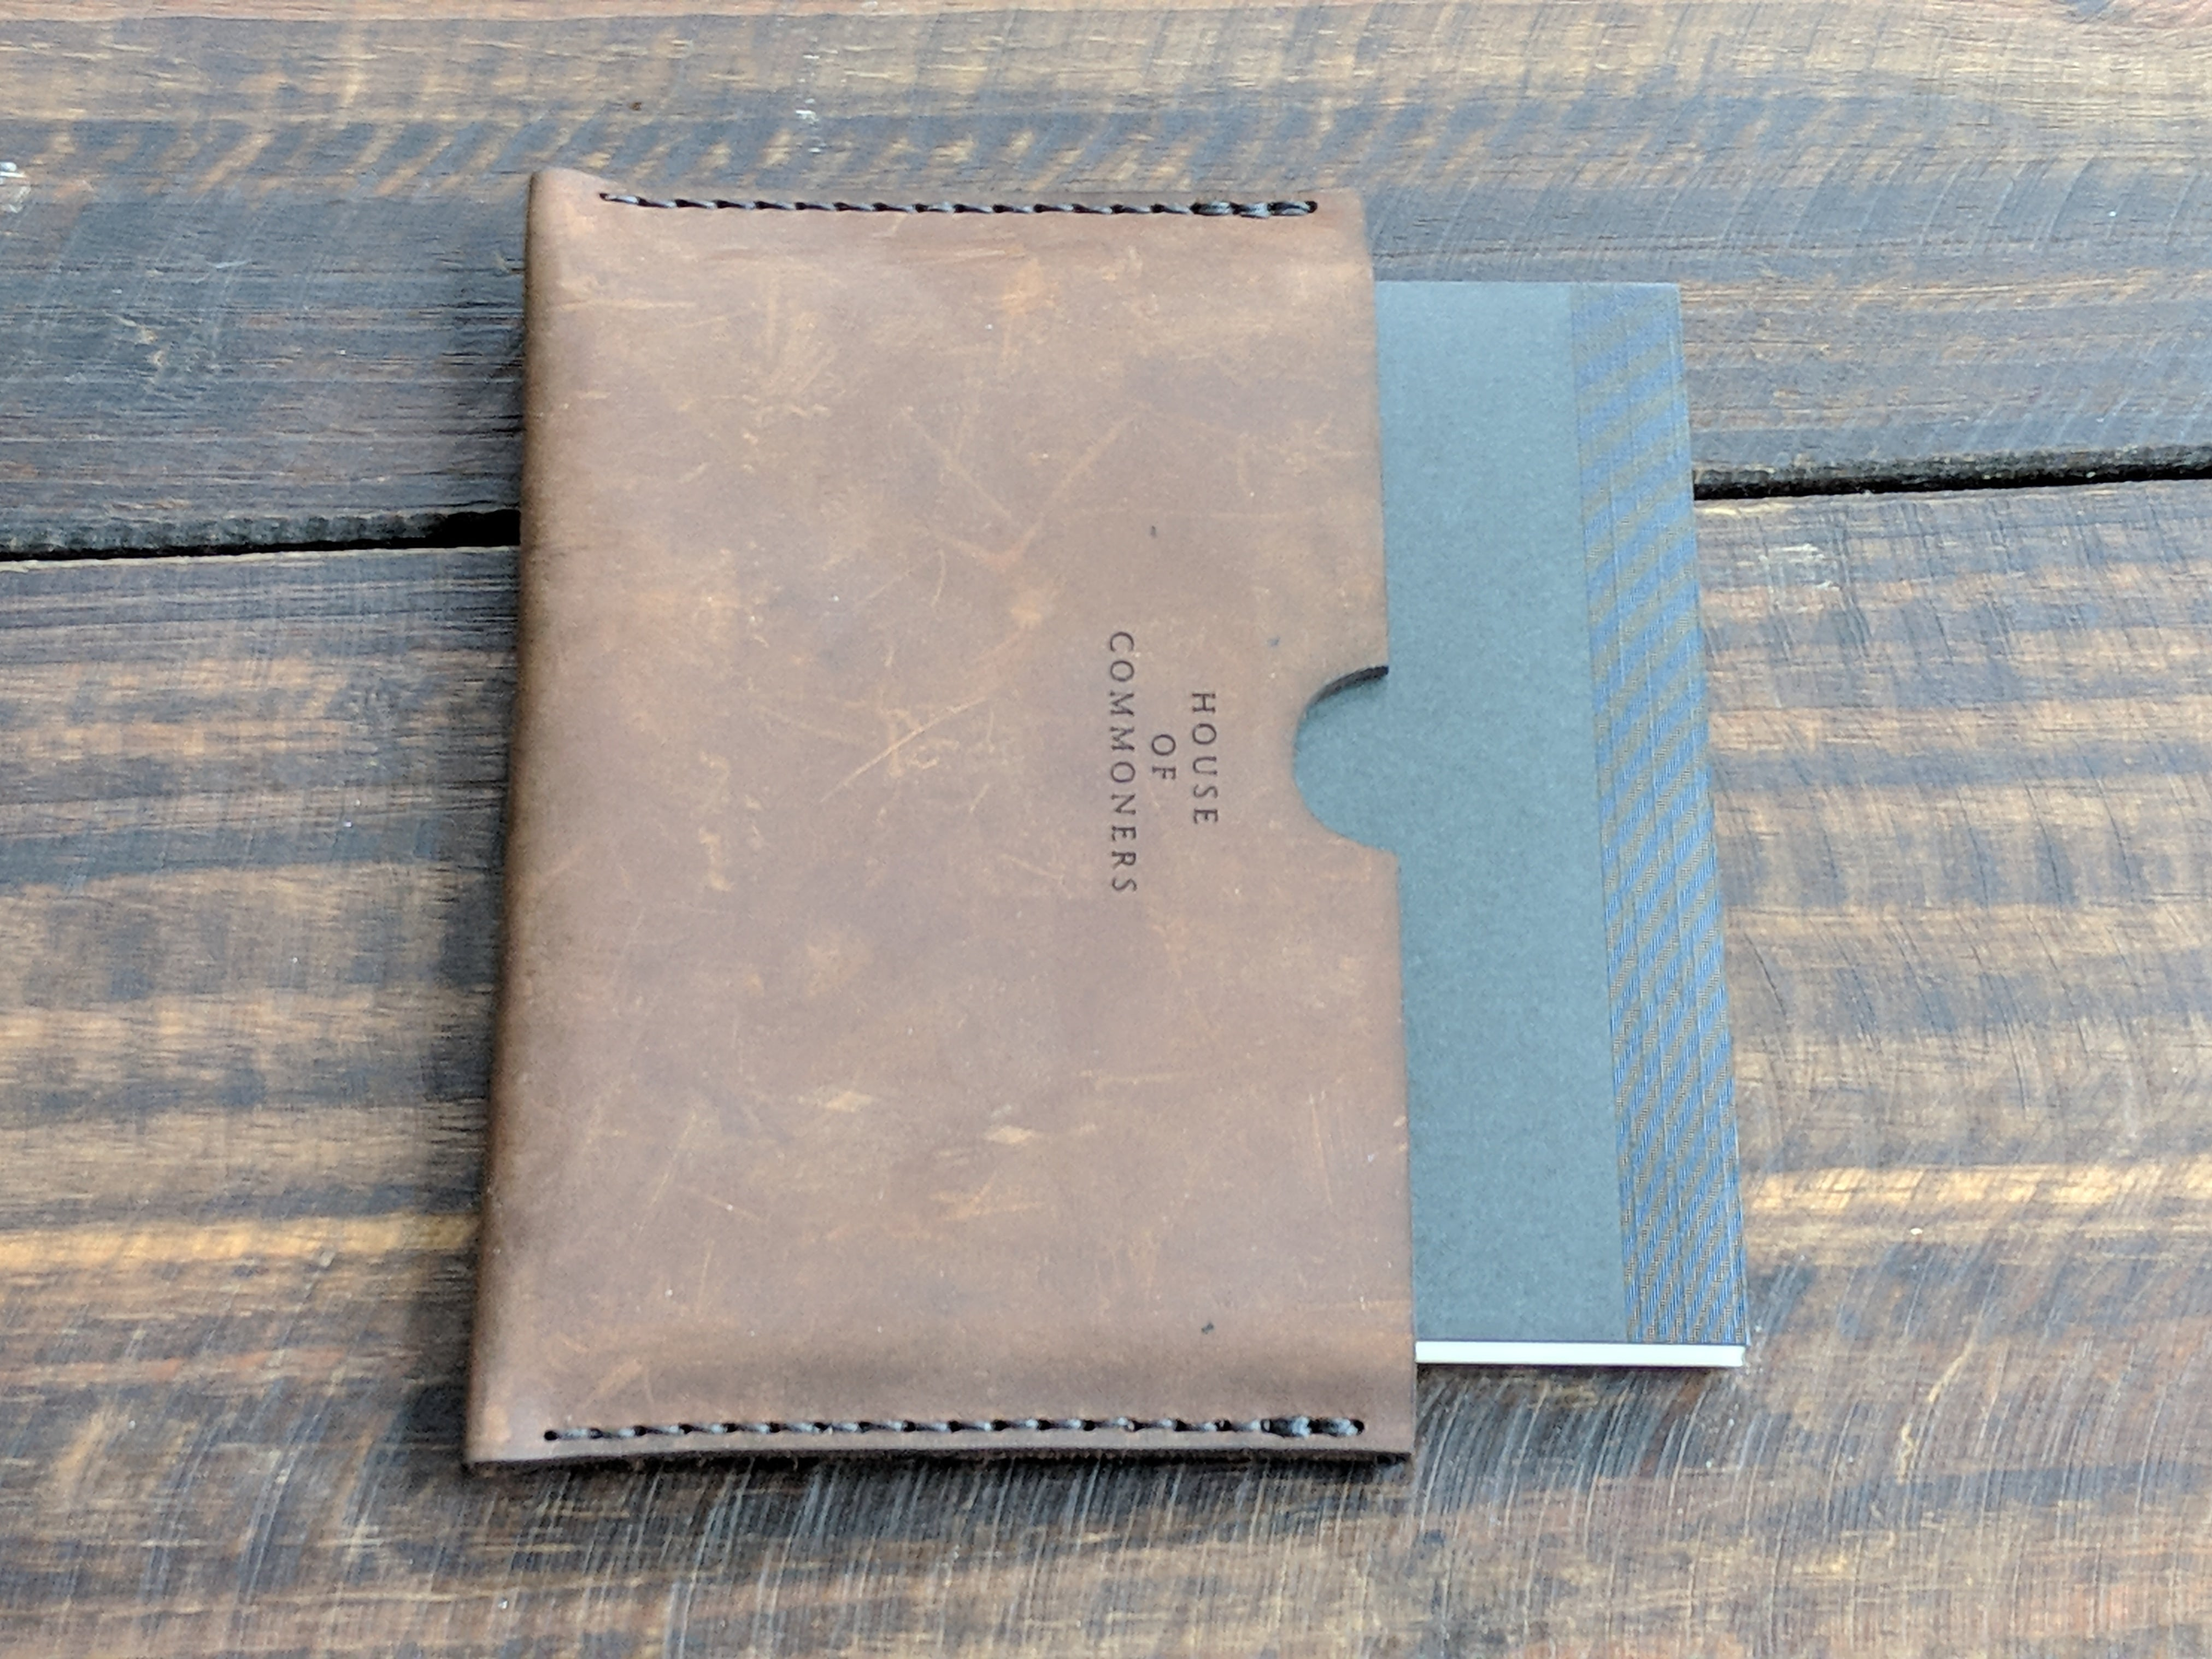 Journal Case + Journal - Method and Materials